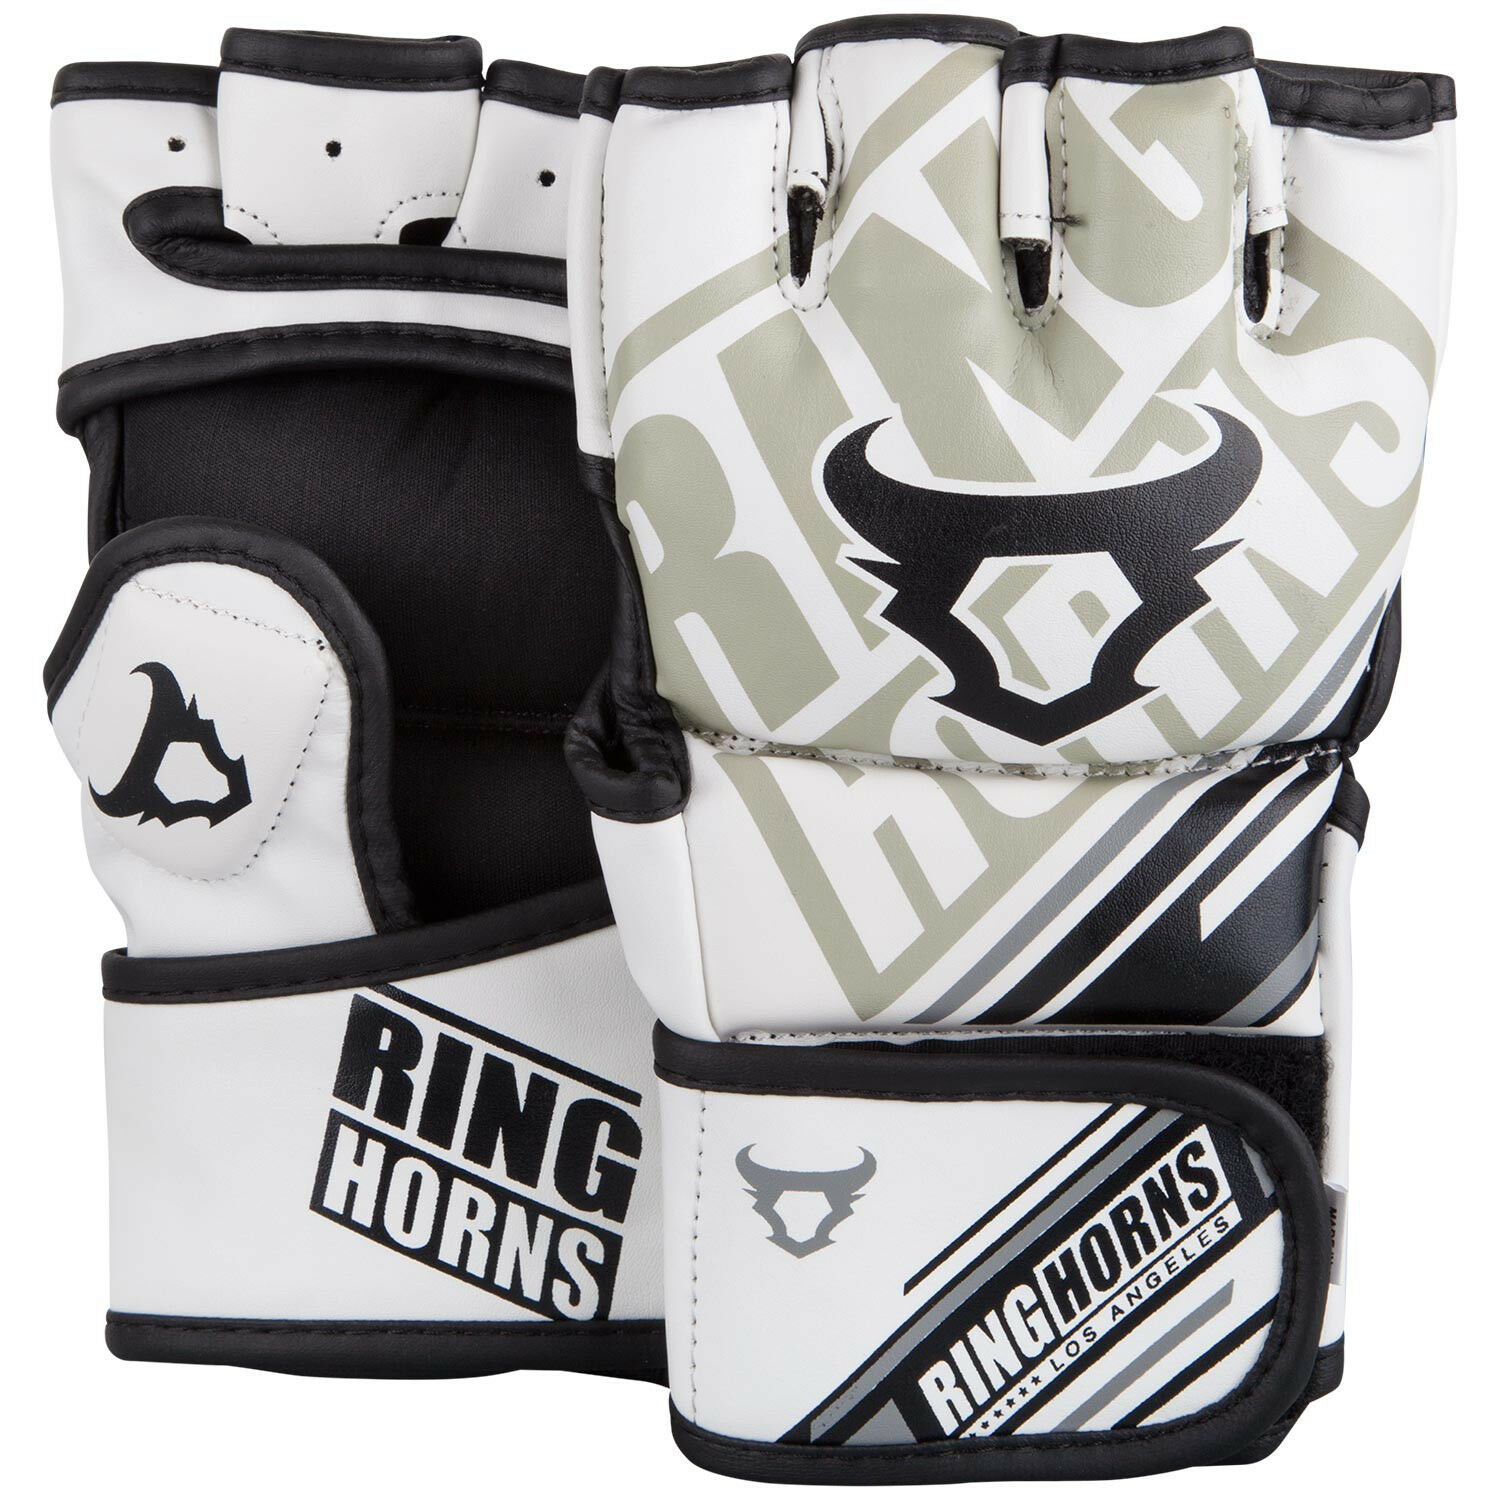 Ringhorns Nitro by Venum MMA MMA MMA Gloves Martial Arts Fight Sparring  Herren 73065d